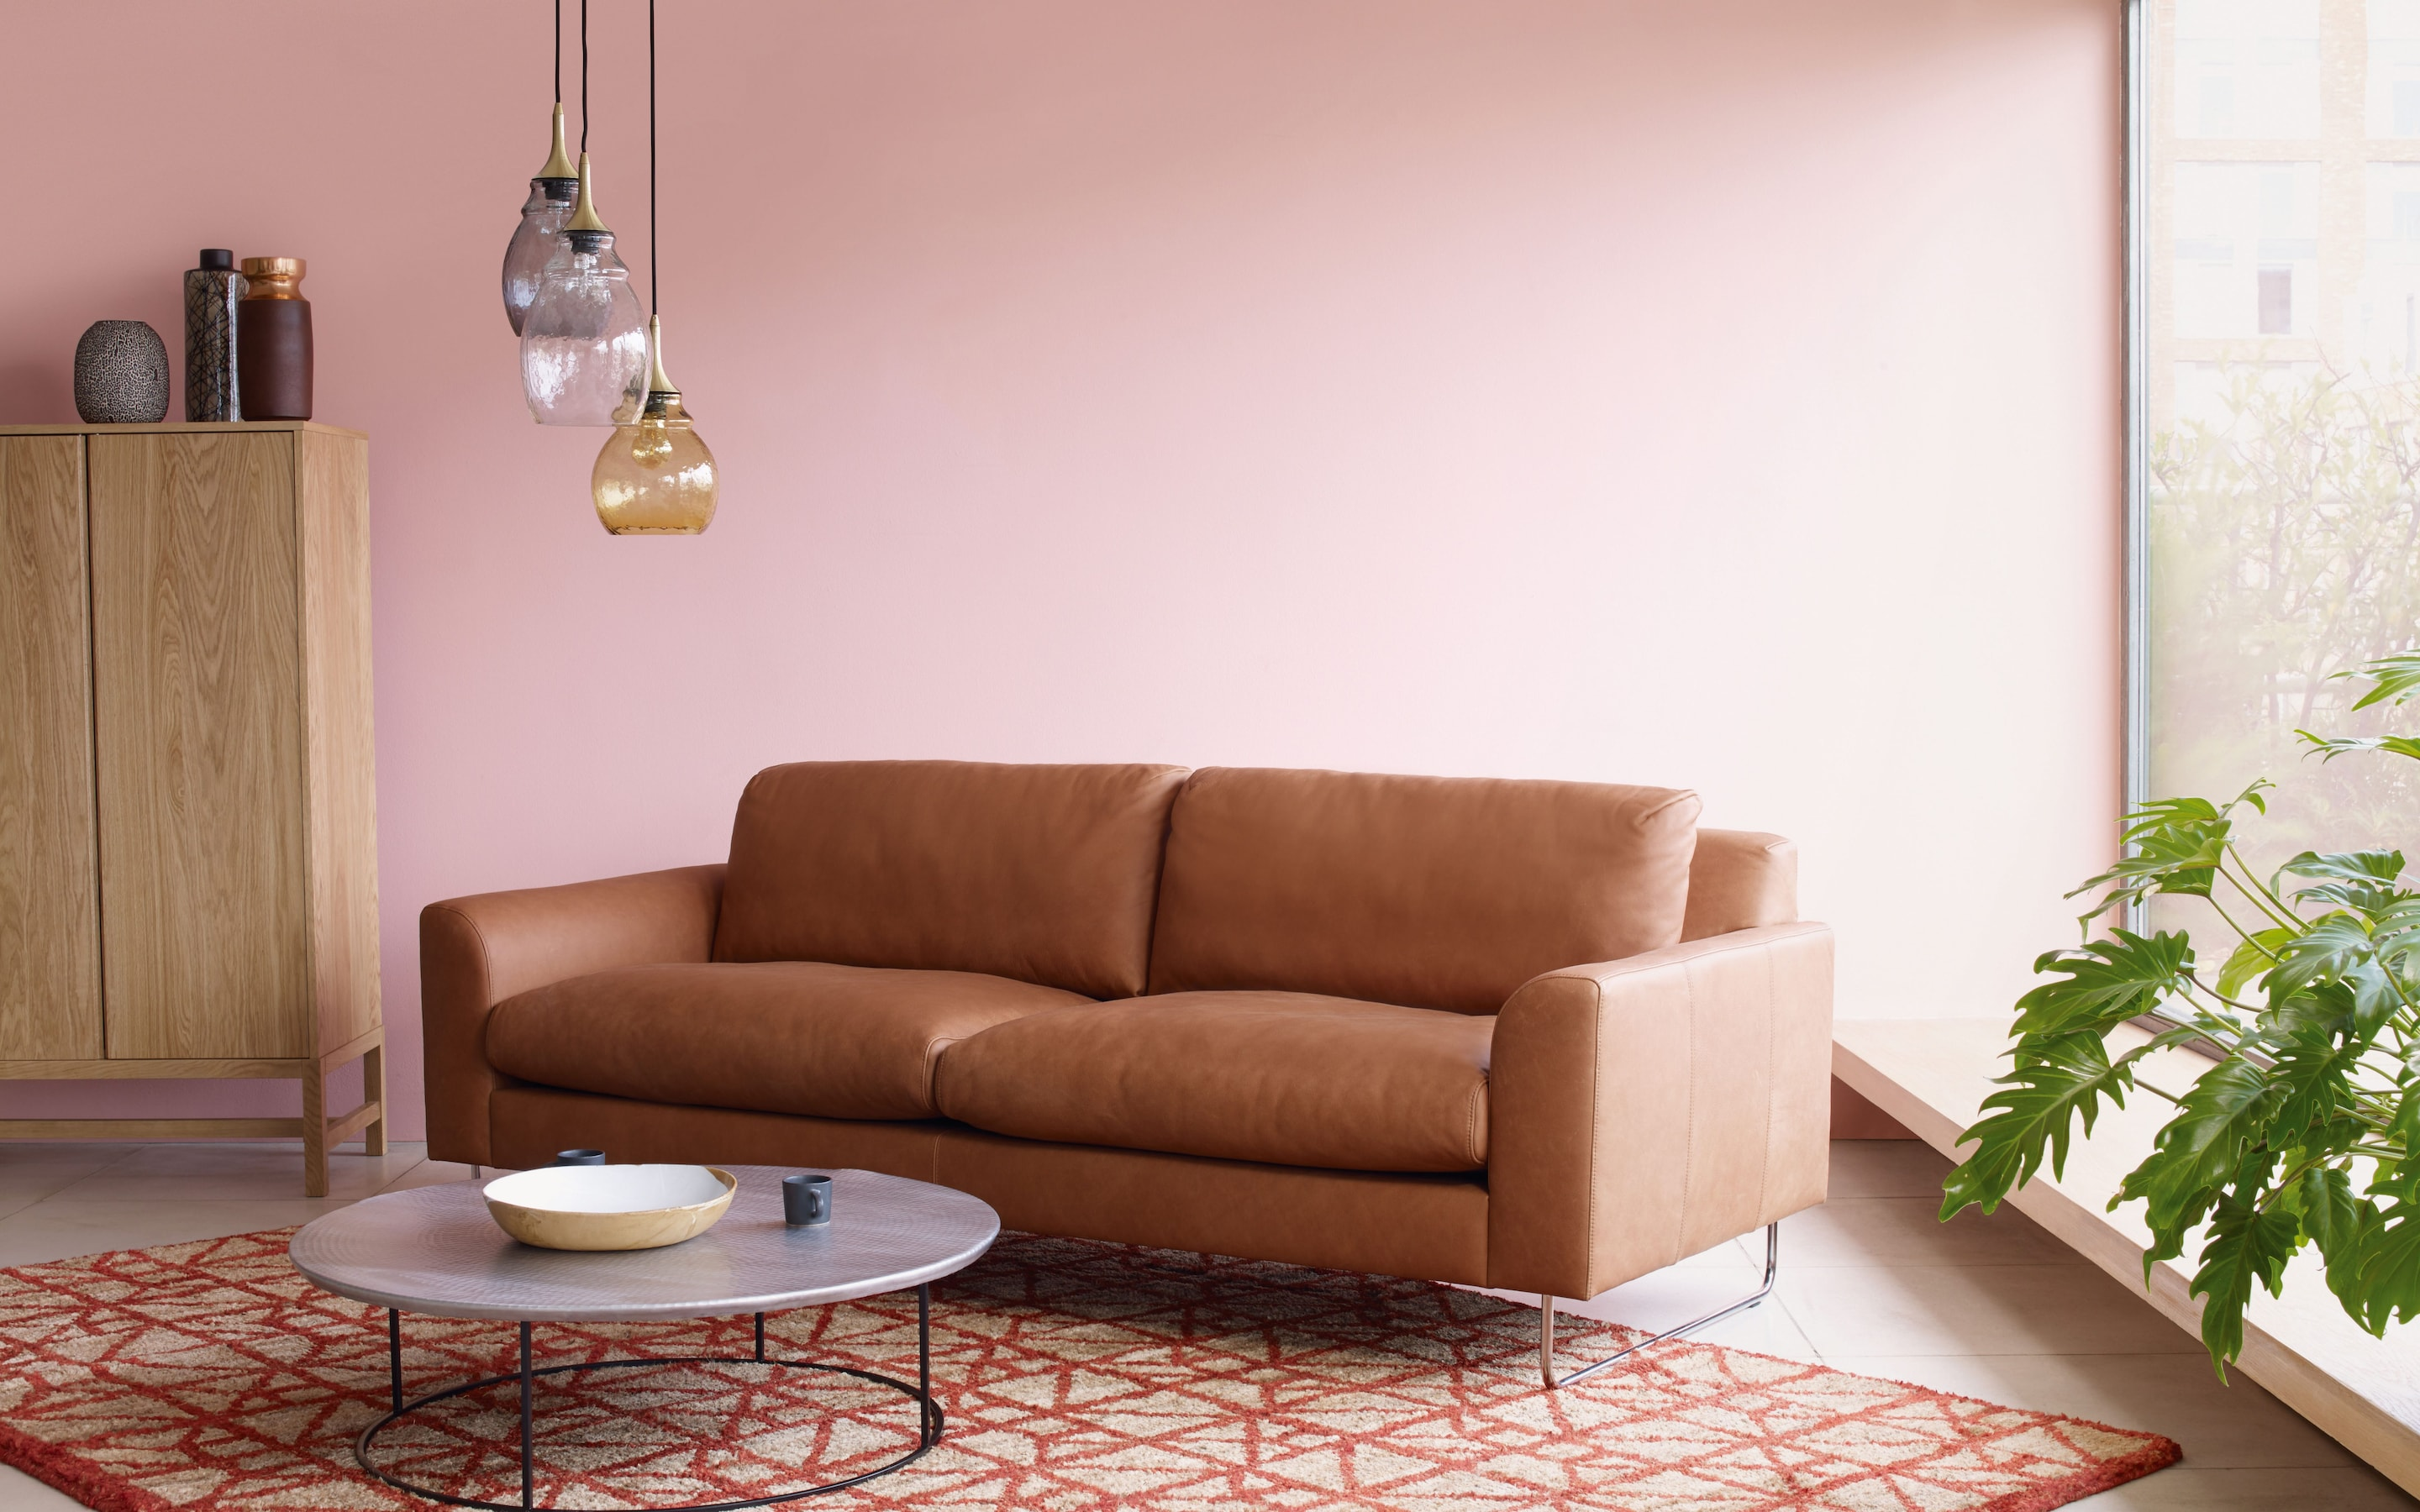 Sofa Wholesalers Uk 17 Of The Best Sofas And Couches To Buy For All Budgets